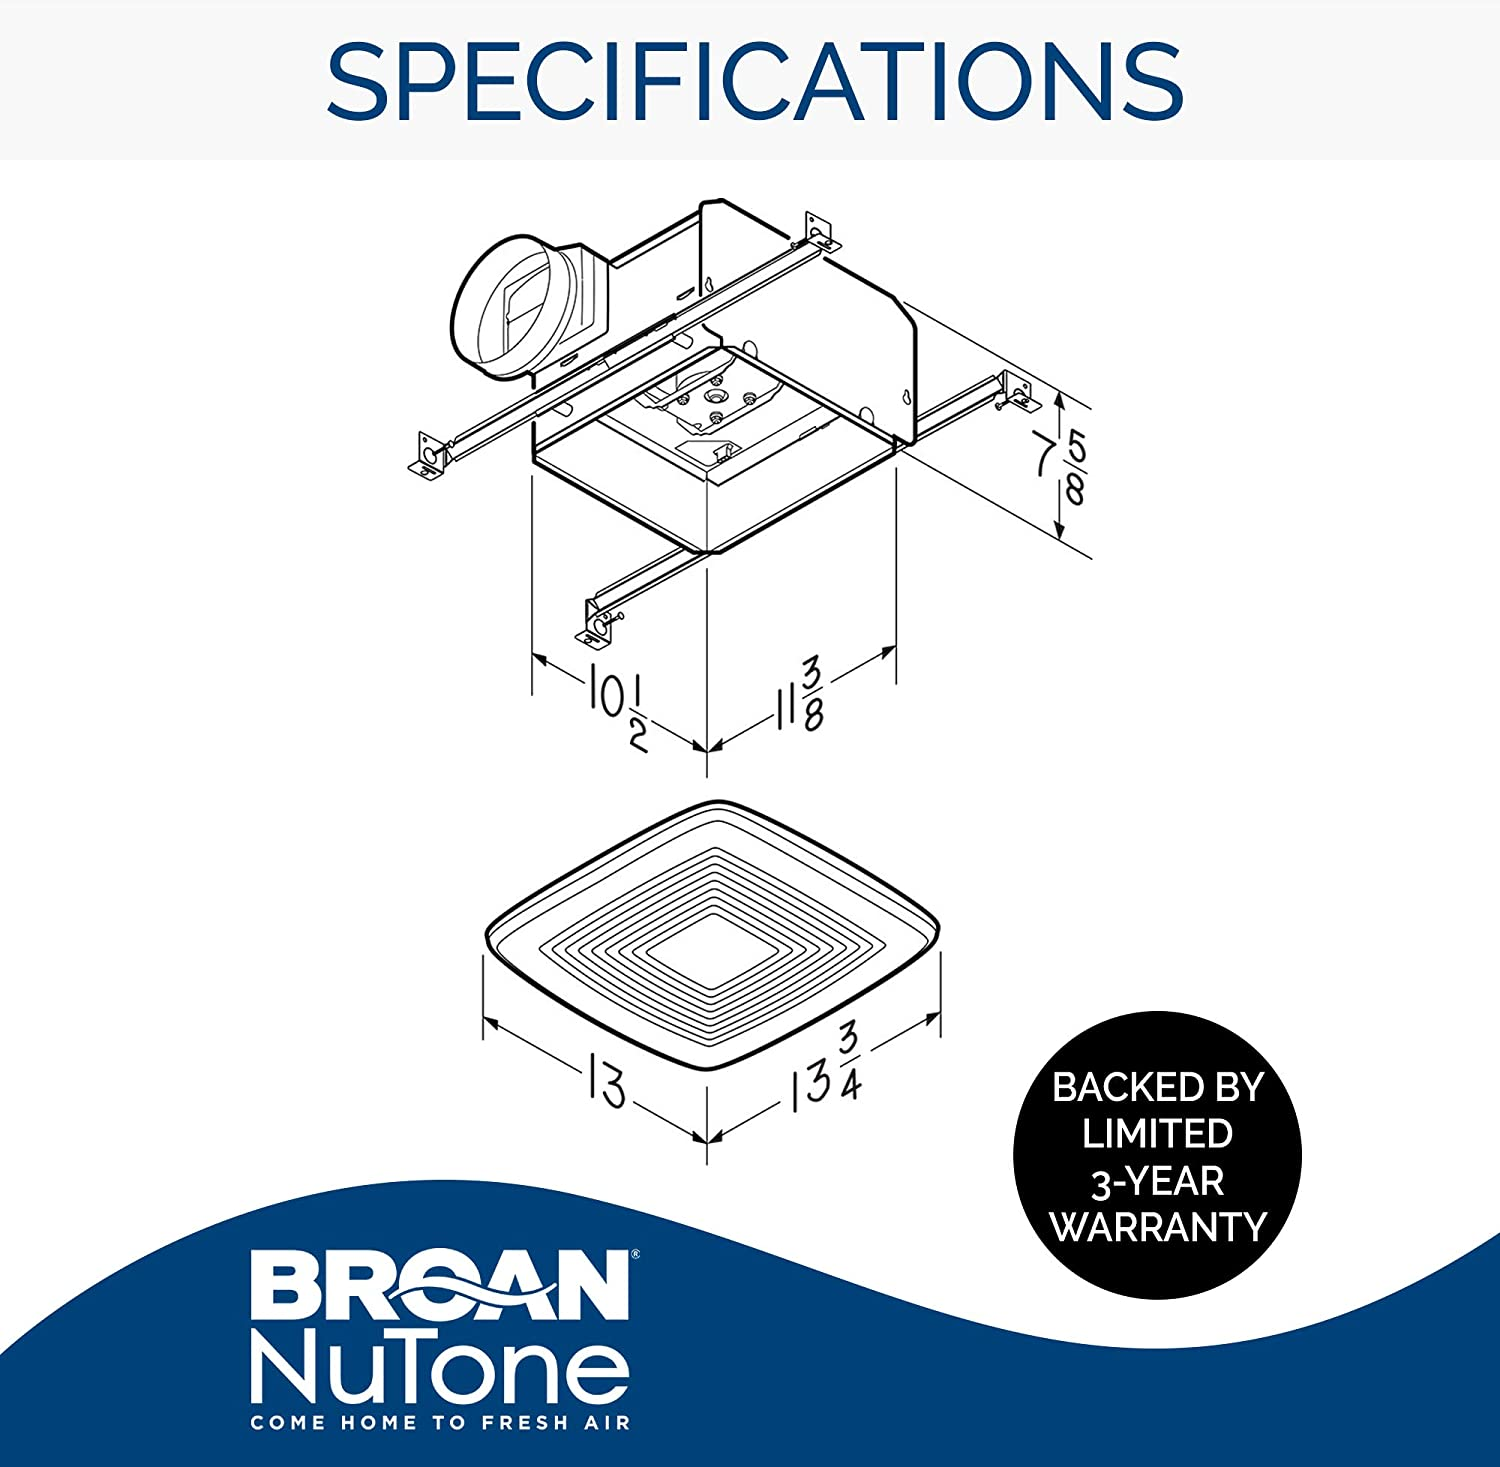 Broan-Nutone QTXE110 Ultra-Silent Ventilation Exhaust Fan for Bathroom and  Home, ENERGY STAR Certified, 0.7 Sones, 110 CFM - Built In Household  Ventilation Fans - Amazon.comAmazon.com